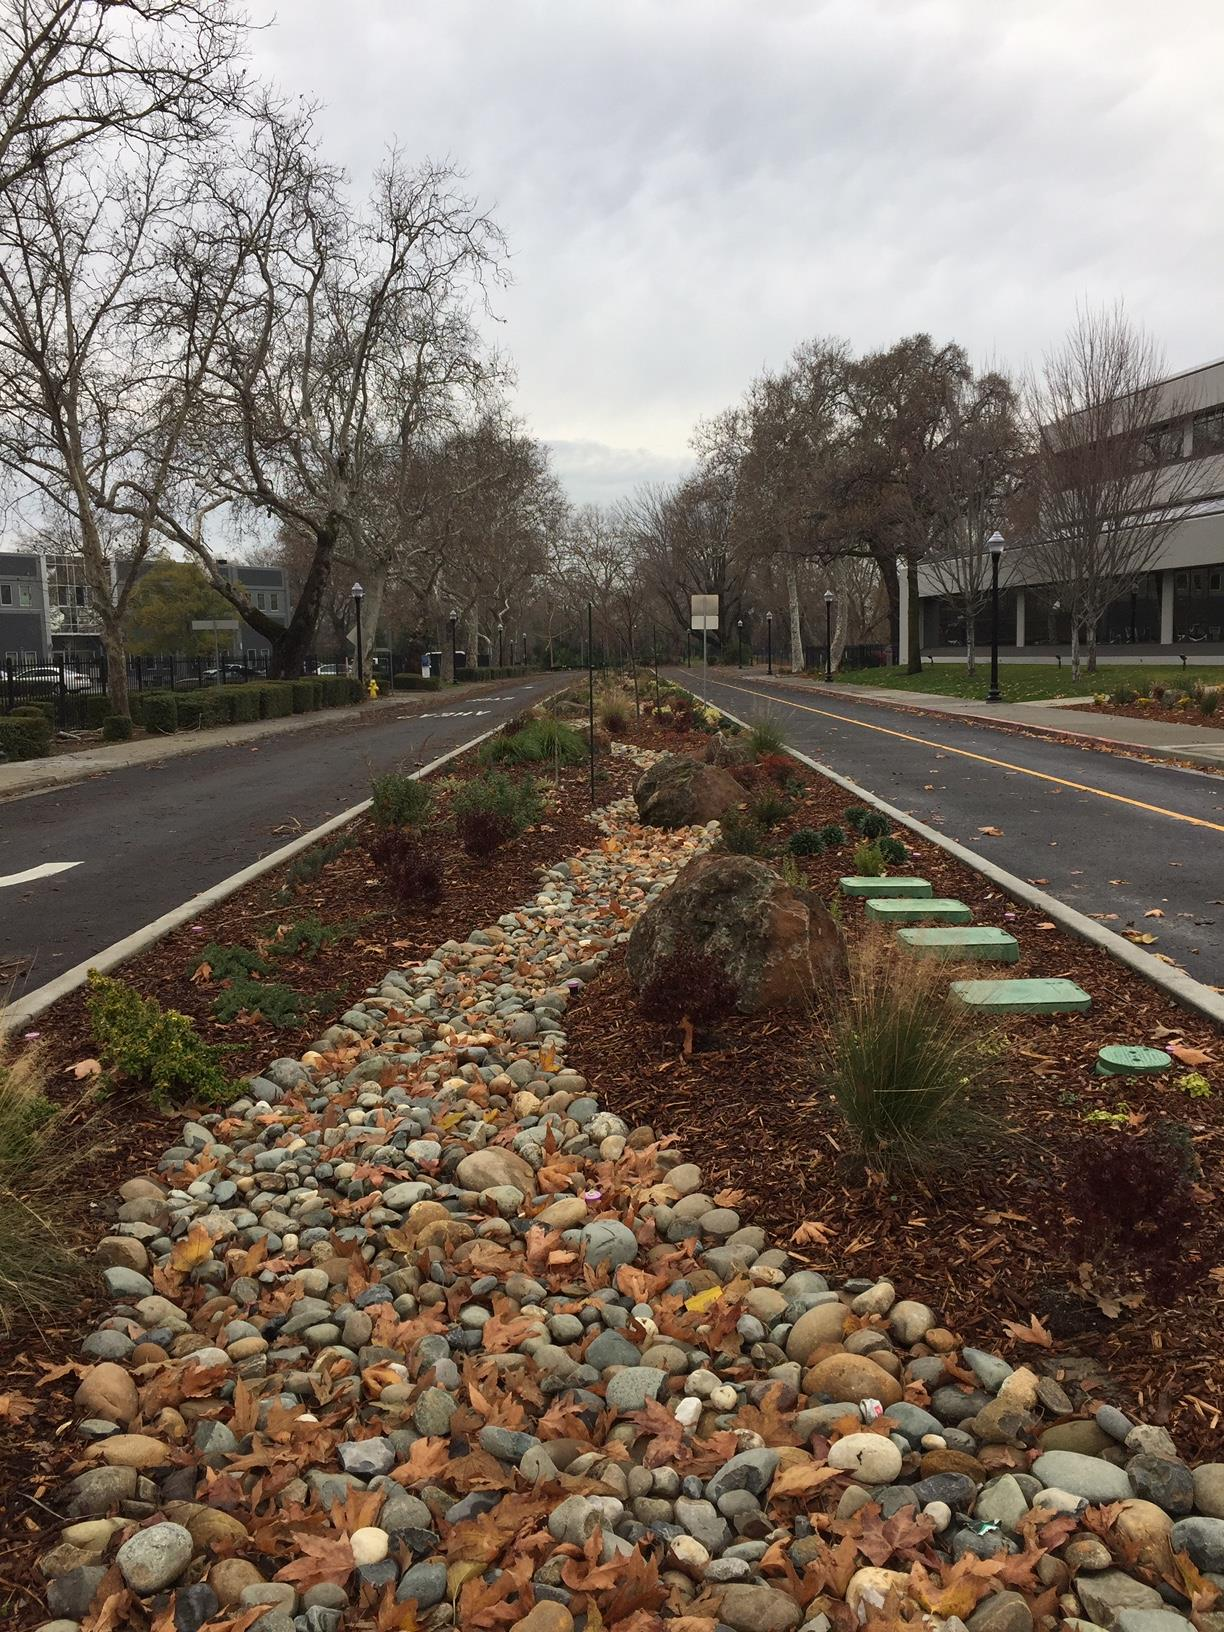 2019-01-08 Gateway rock landscaping in front of Raley's